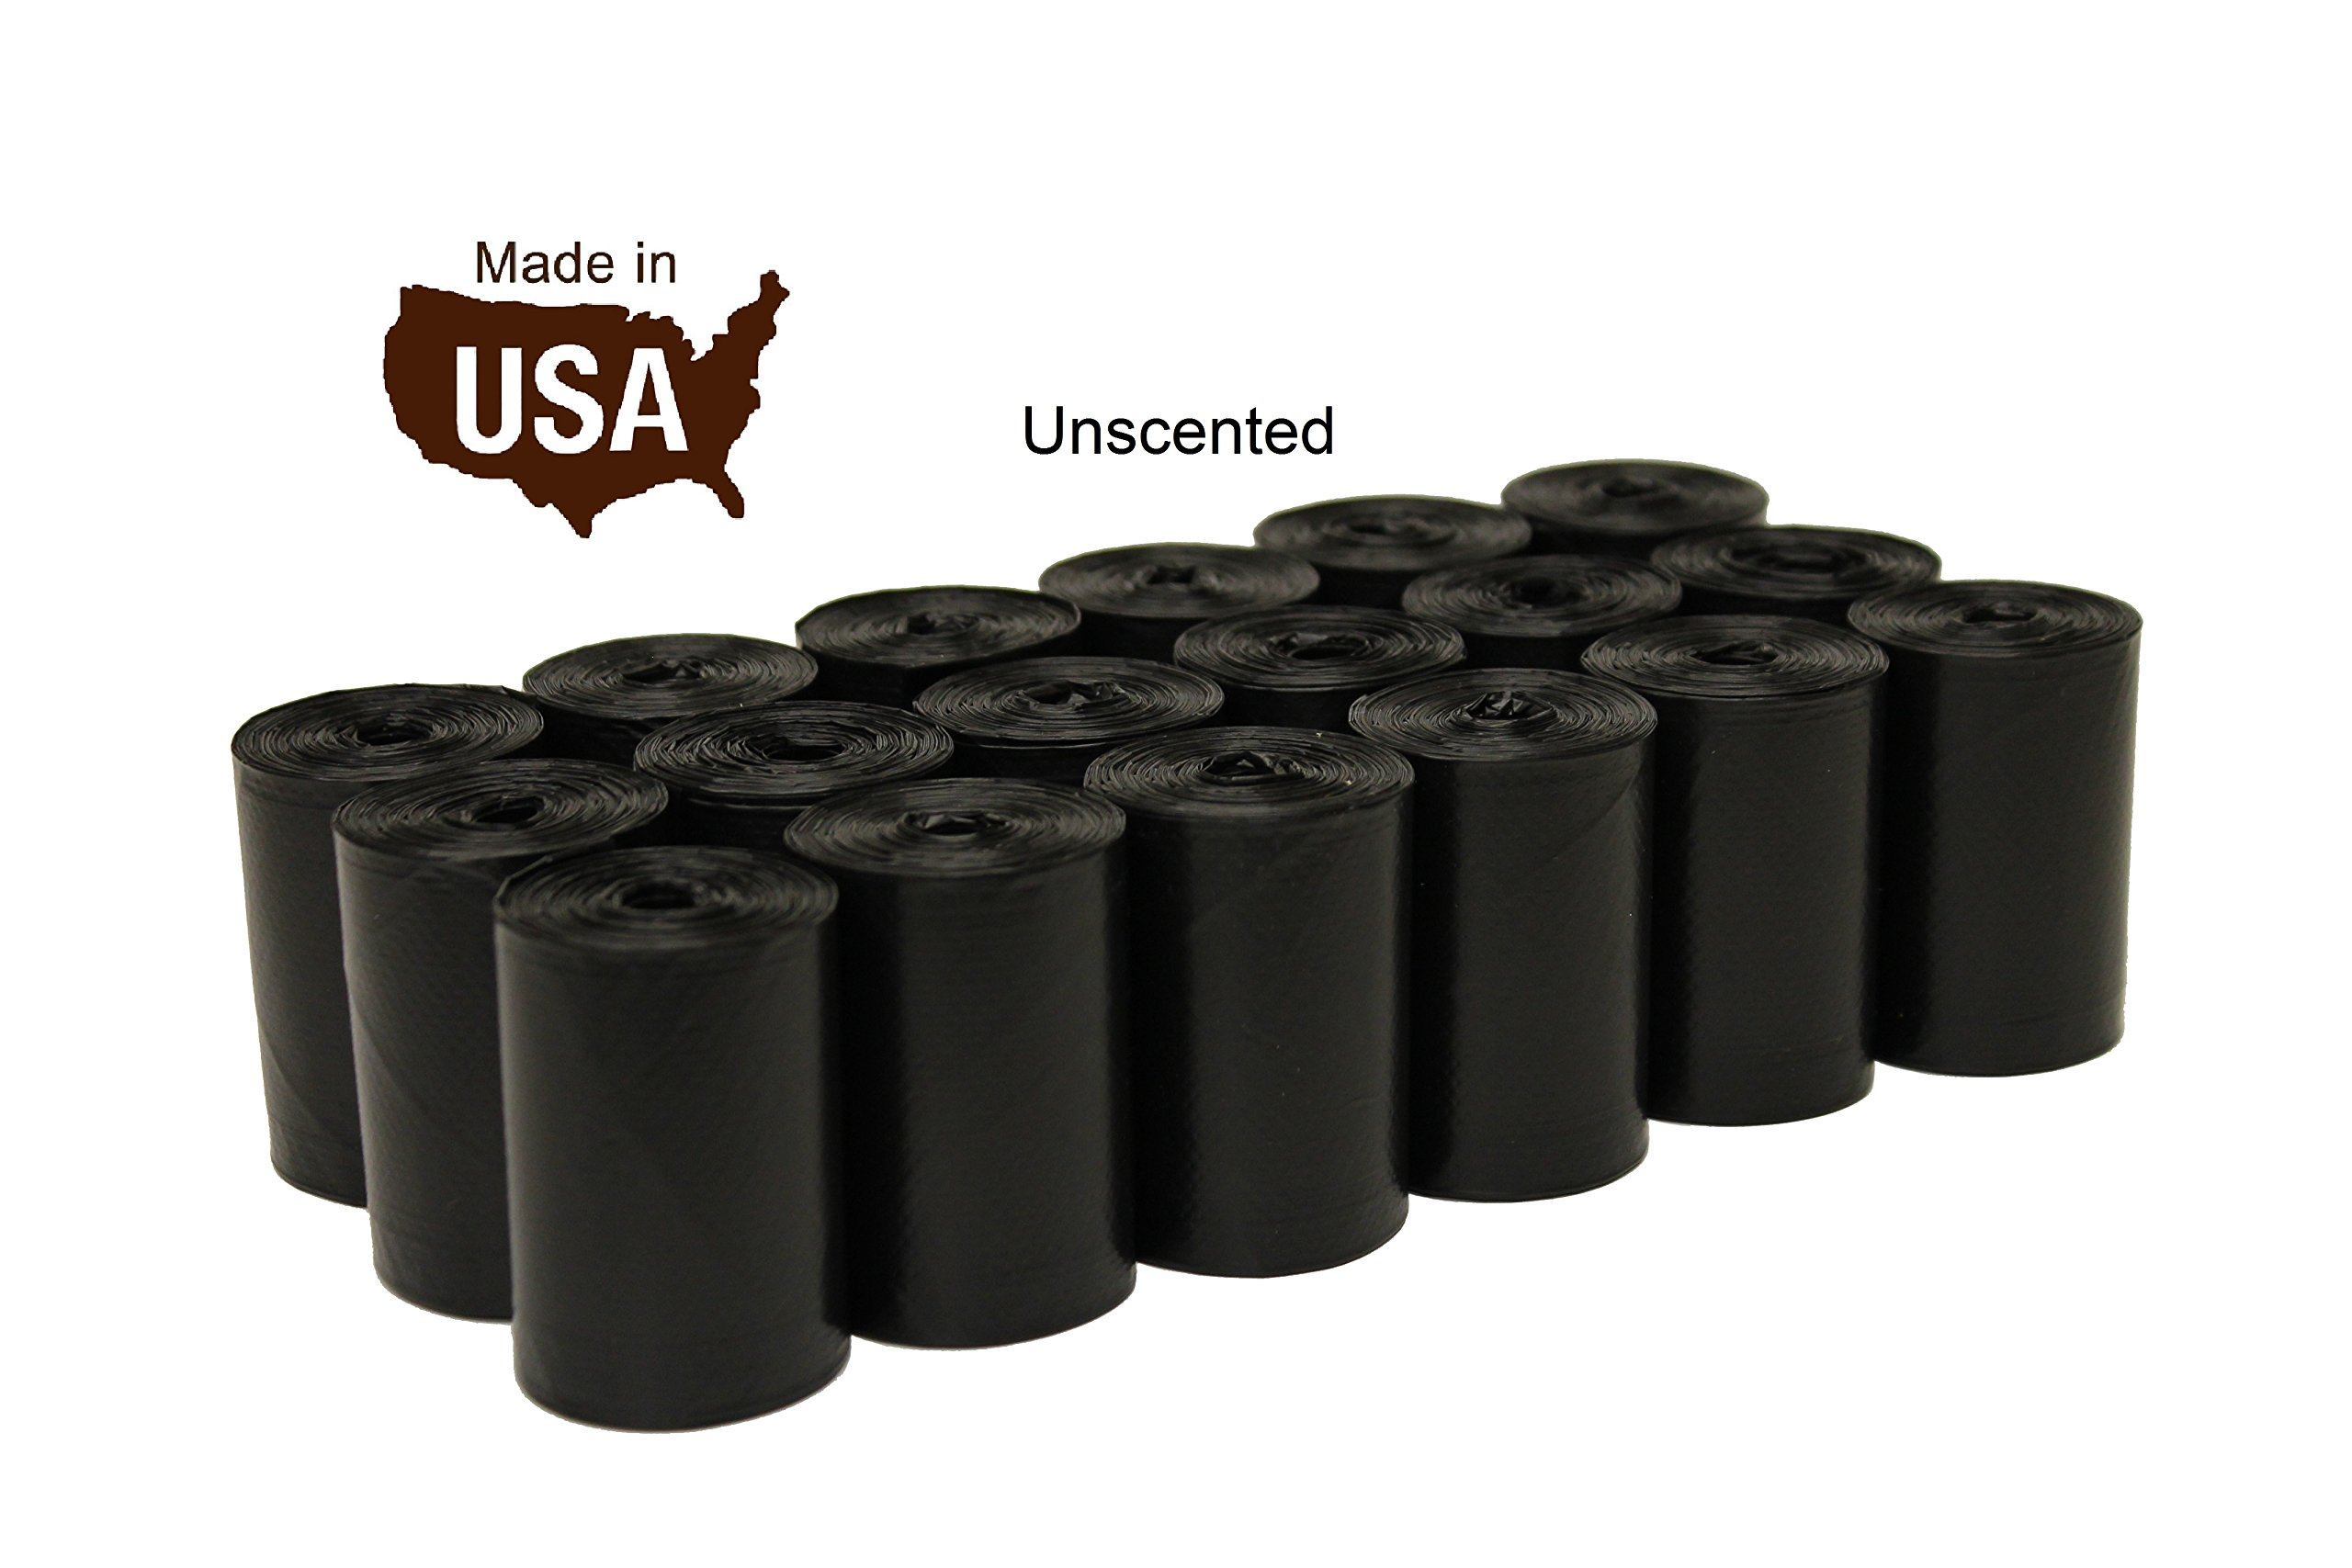 Five Star Pet Unscented 9'' x 15'' Made in USA Easy Open Poop Bags Dog Waste Bags, Free Dispenser, 18 Refill Rolls, 270 Count, Black